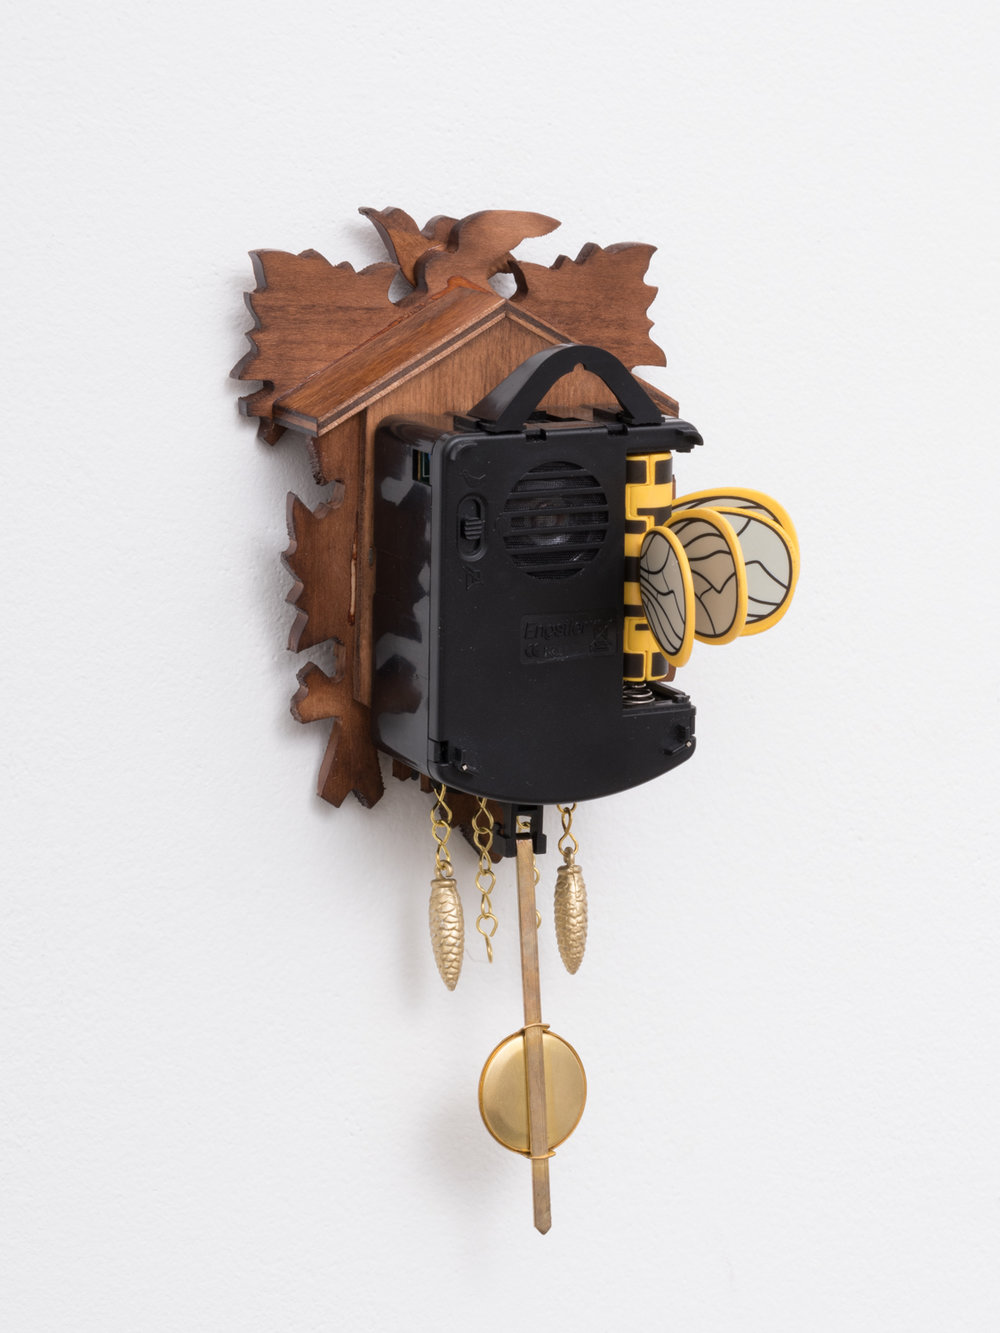 Chadwick Rantanen  Age-Old Bird and Leaf  2017 Battery operated cuckoo clock, 2 artist-made AA battery adaptors (plastic, metal, stickers) 9 ½h x 8w x 4d in CR043